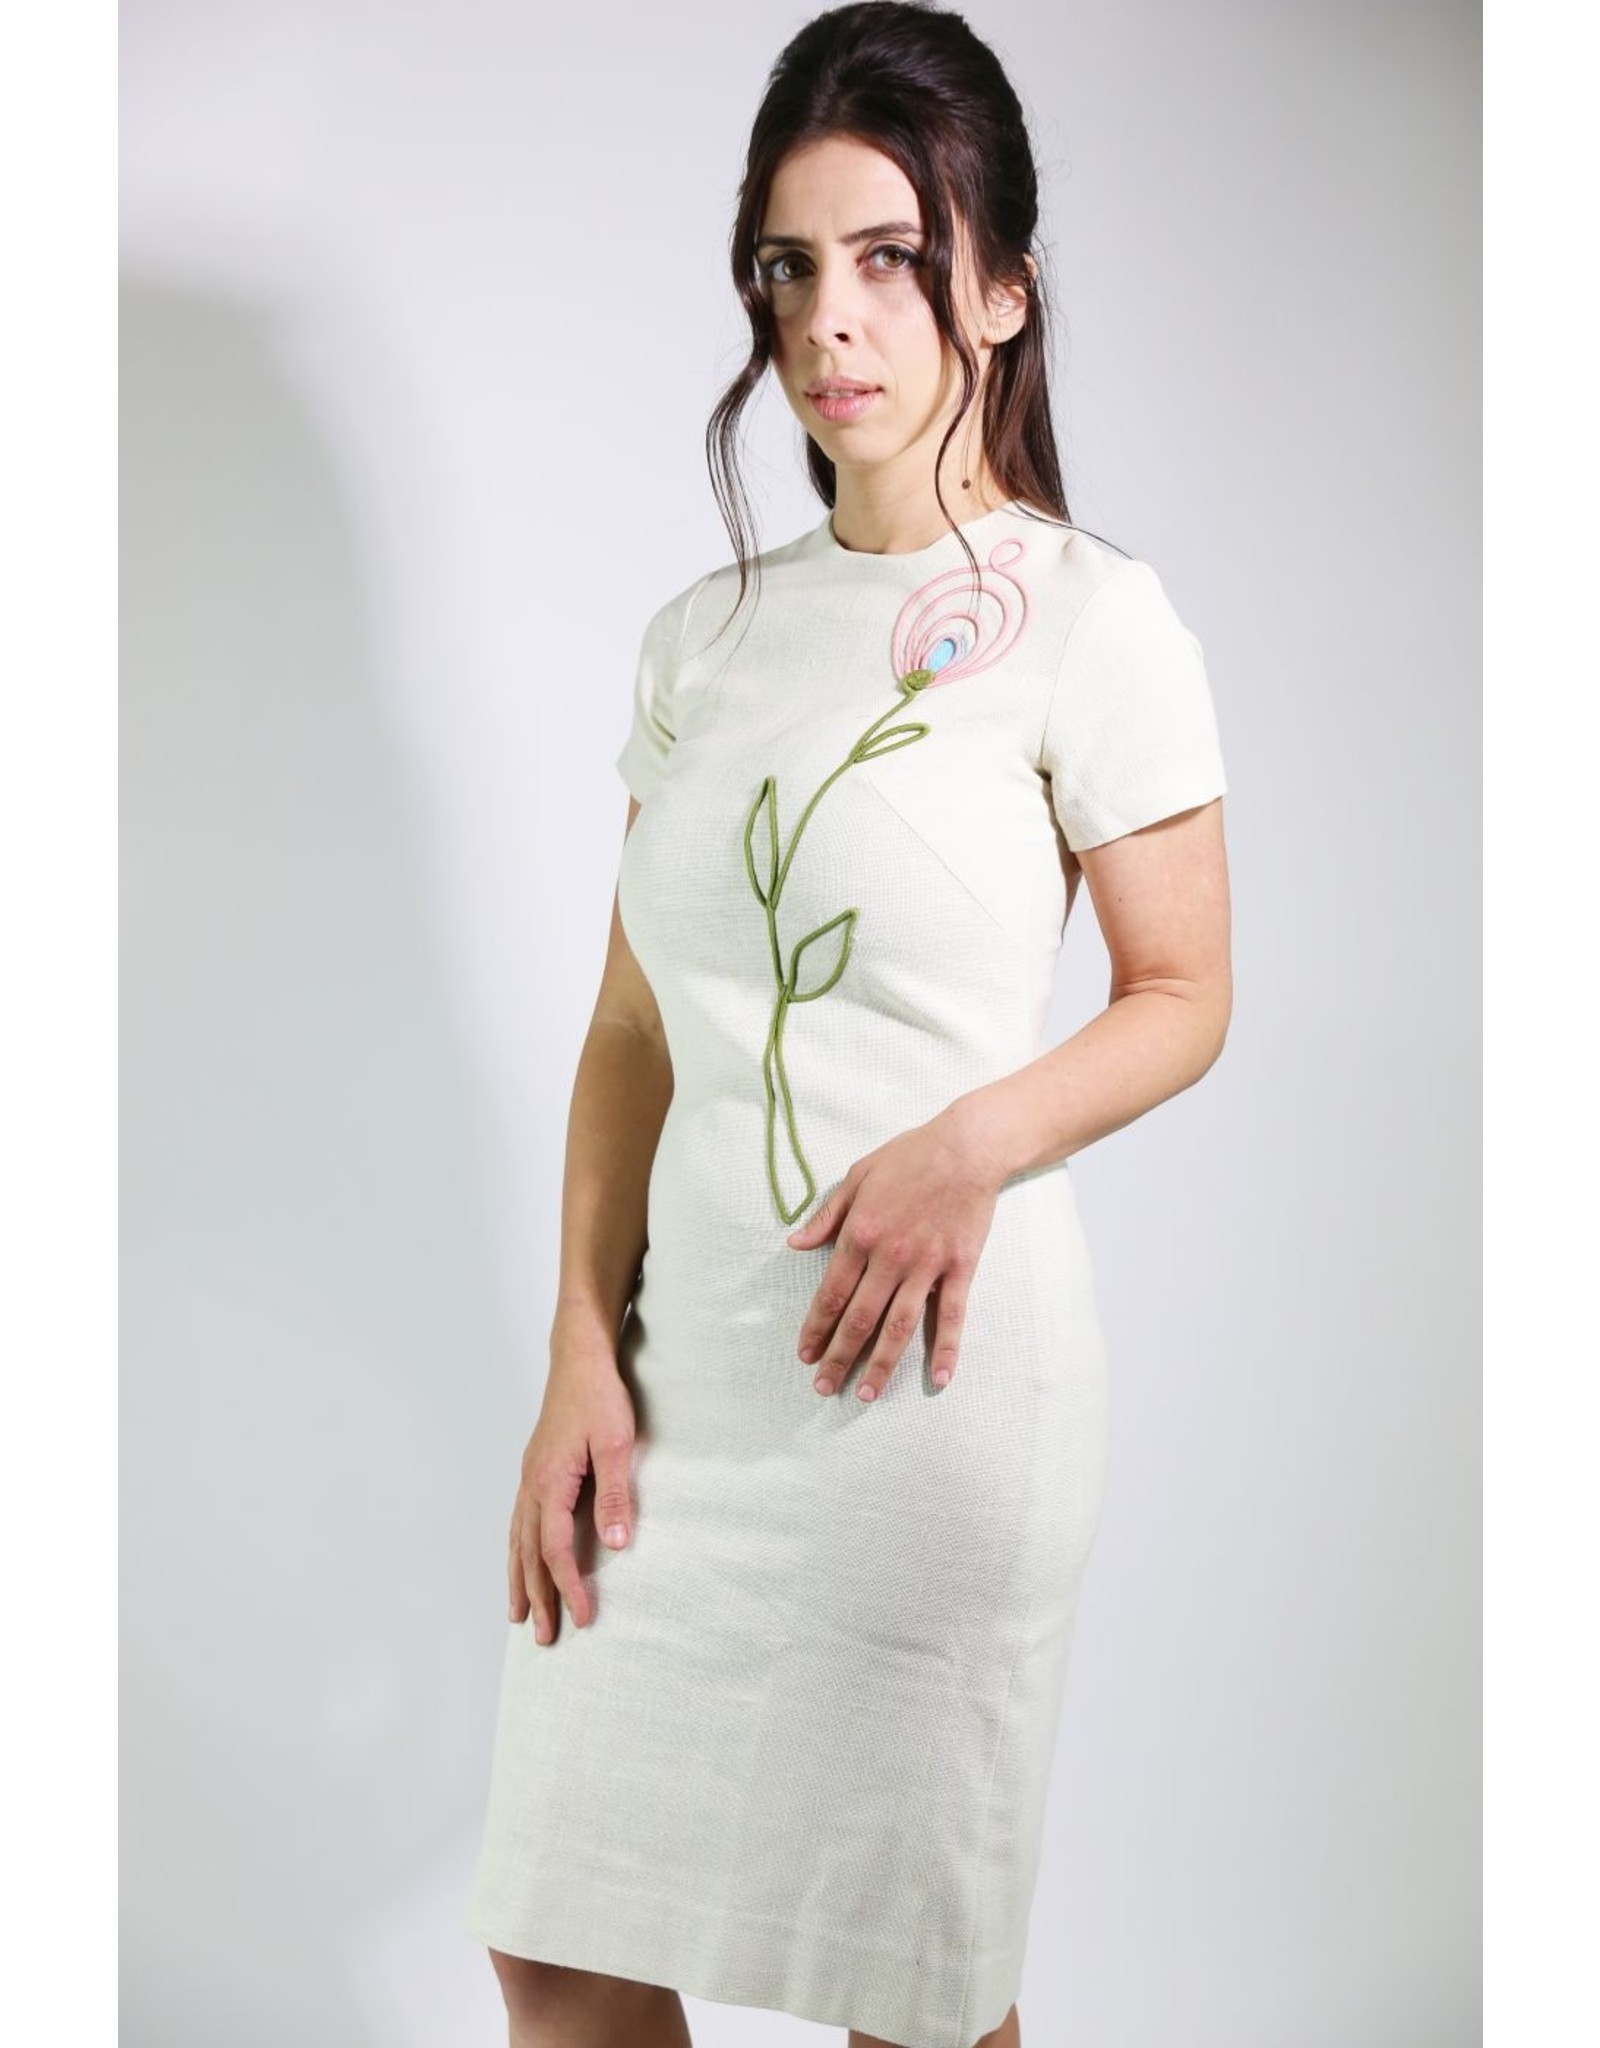 1960's Ivory Shift Dress w/ Mod Flower Decal